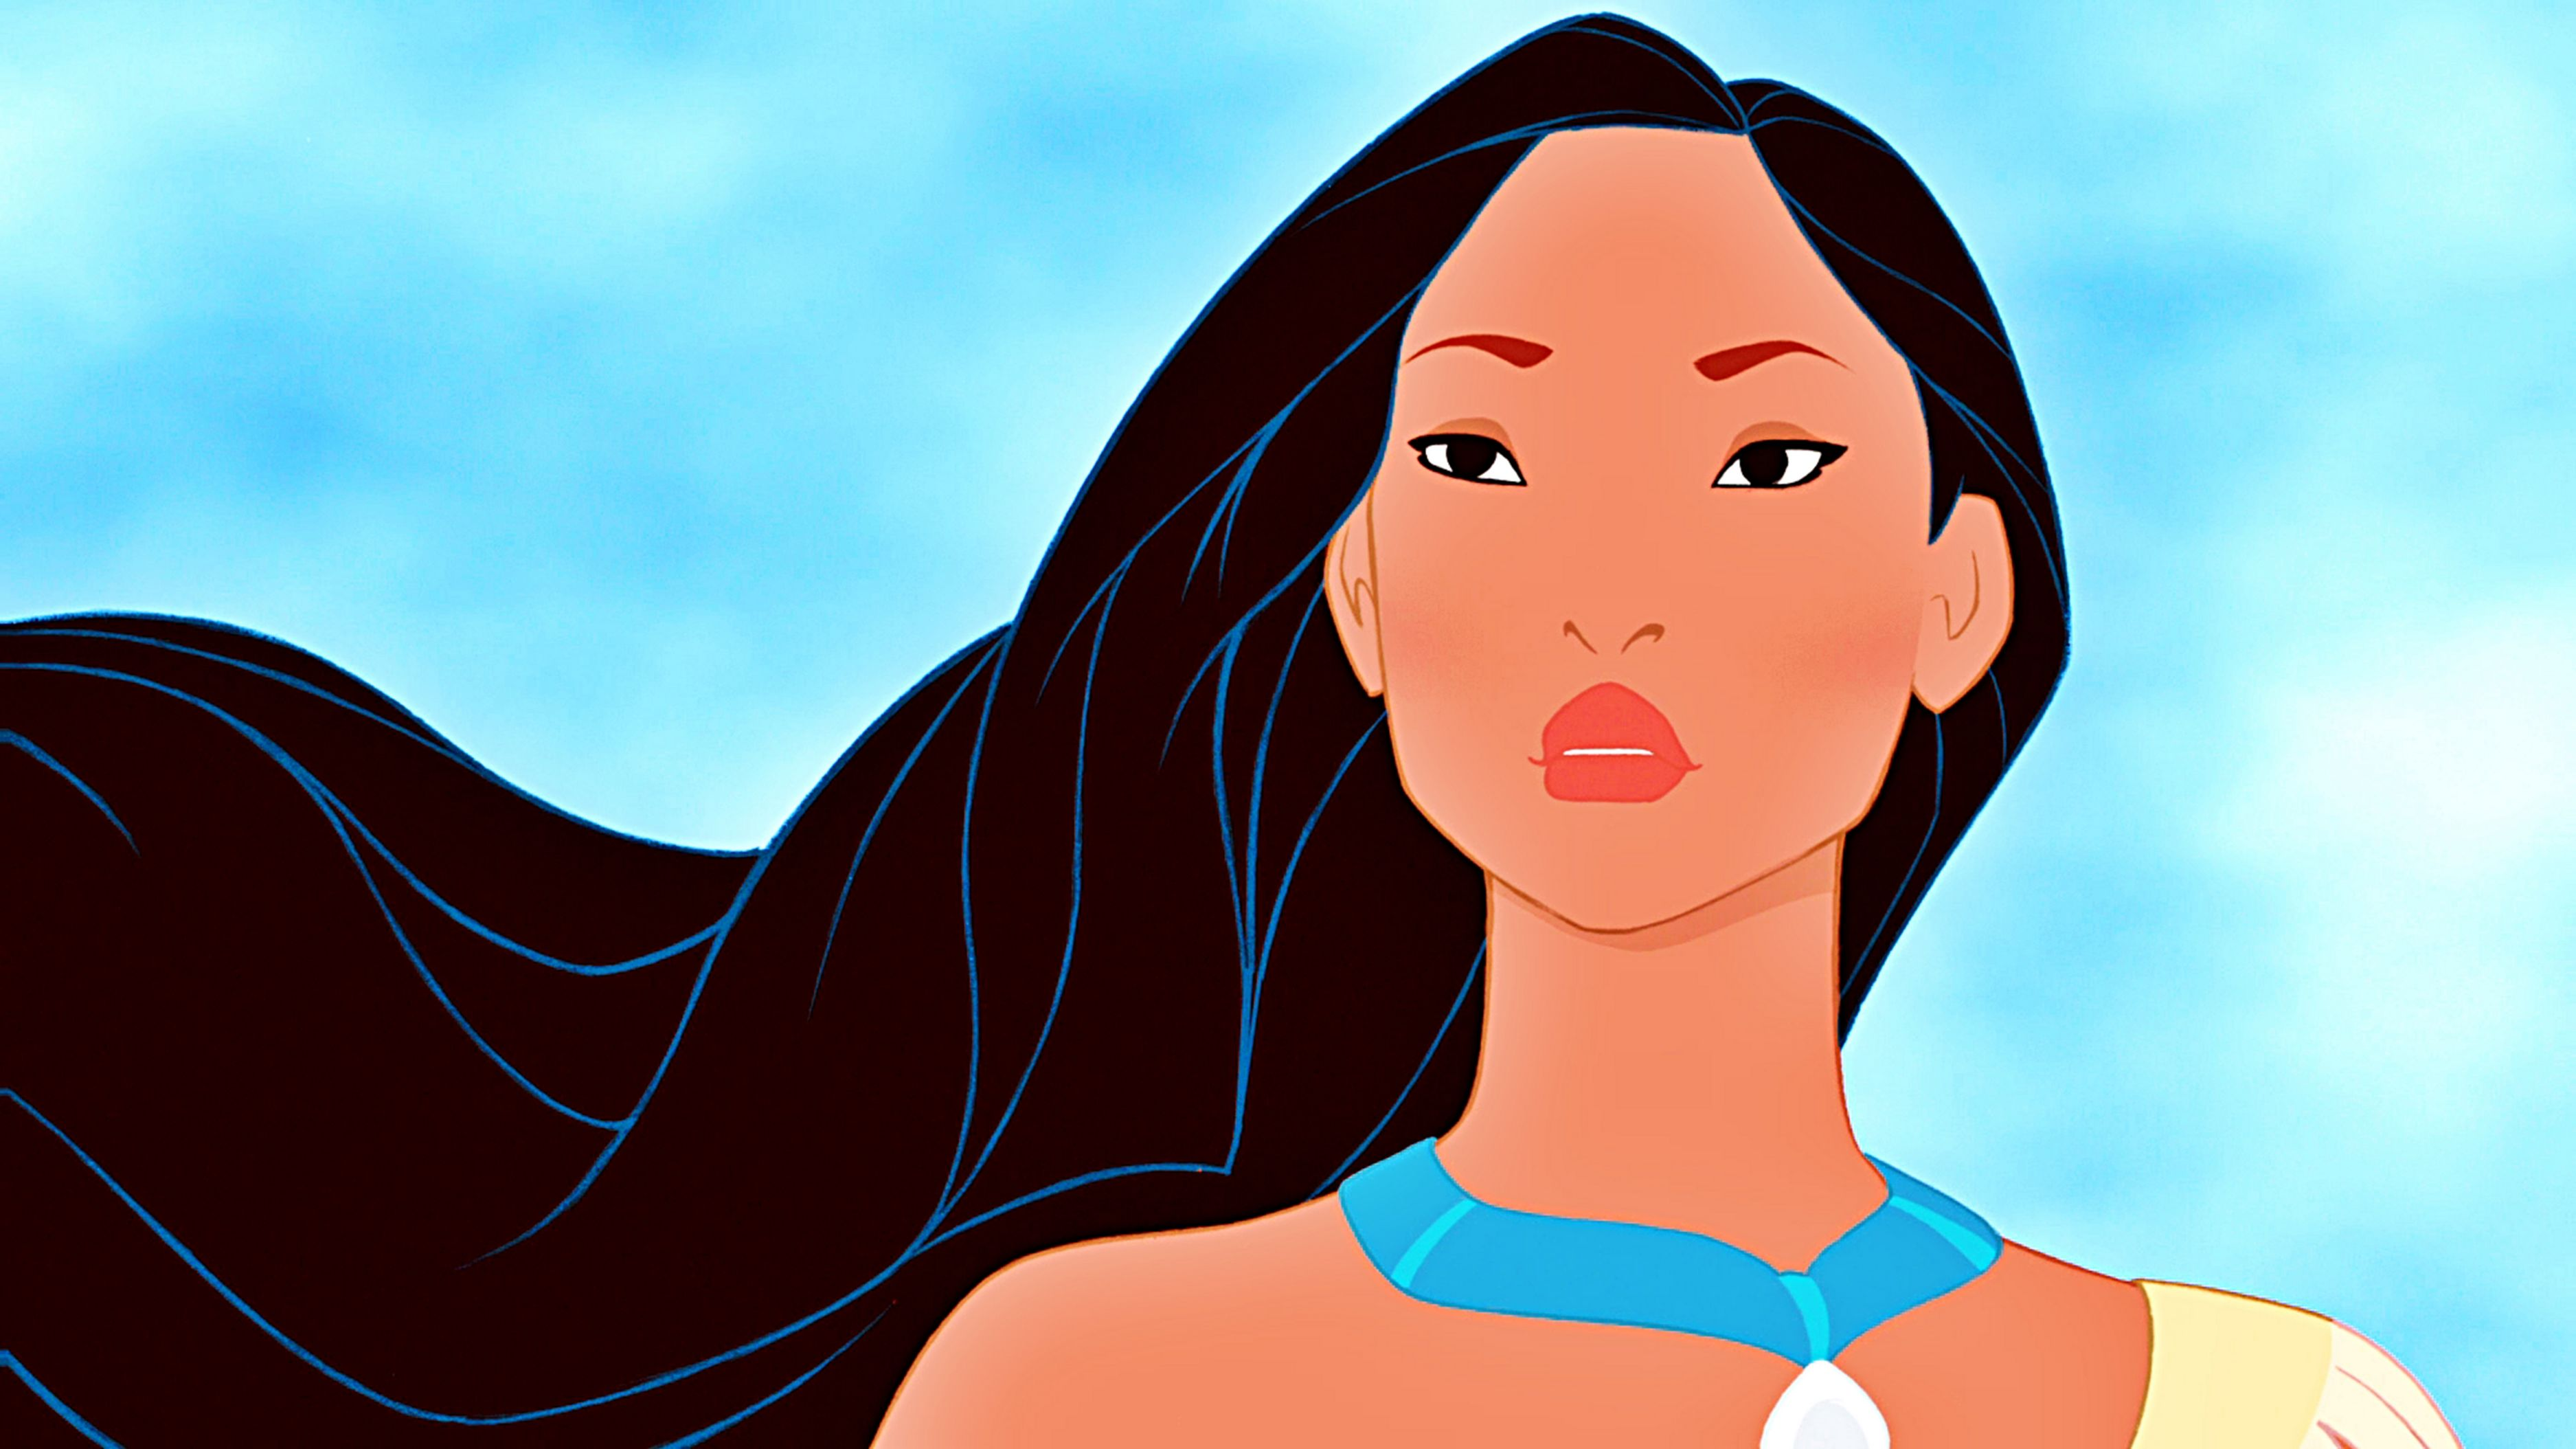 2. The unique features of Pocahontas